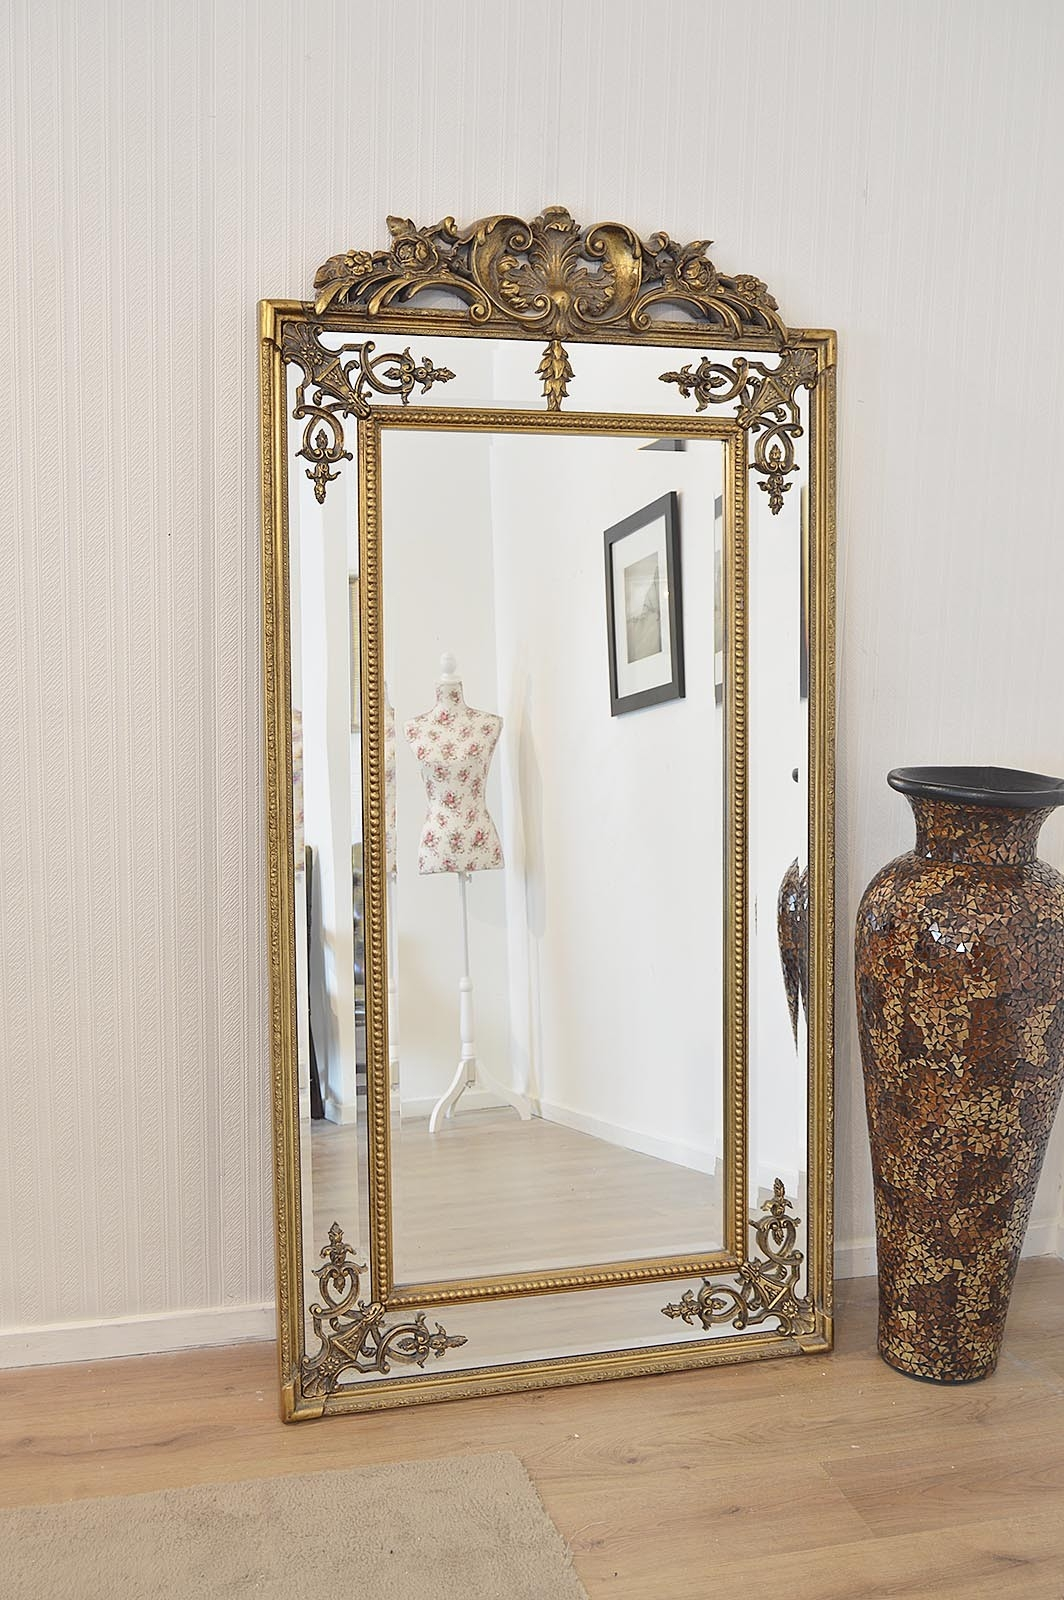 Venetianframeless Mirrors Category Regarding Large Ornate Mirrors For Sale (View 11 of 15)